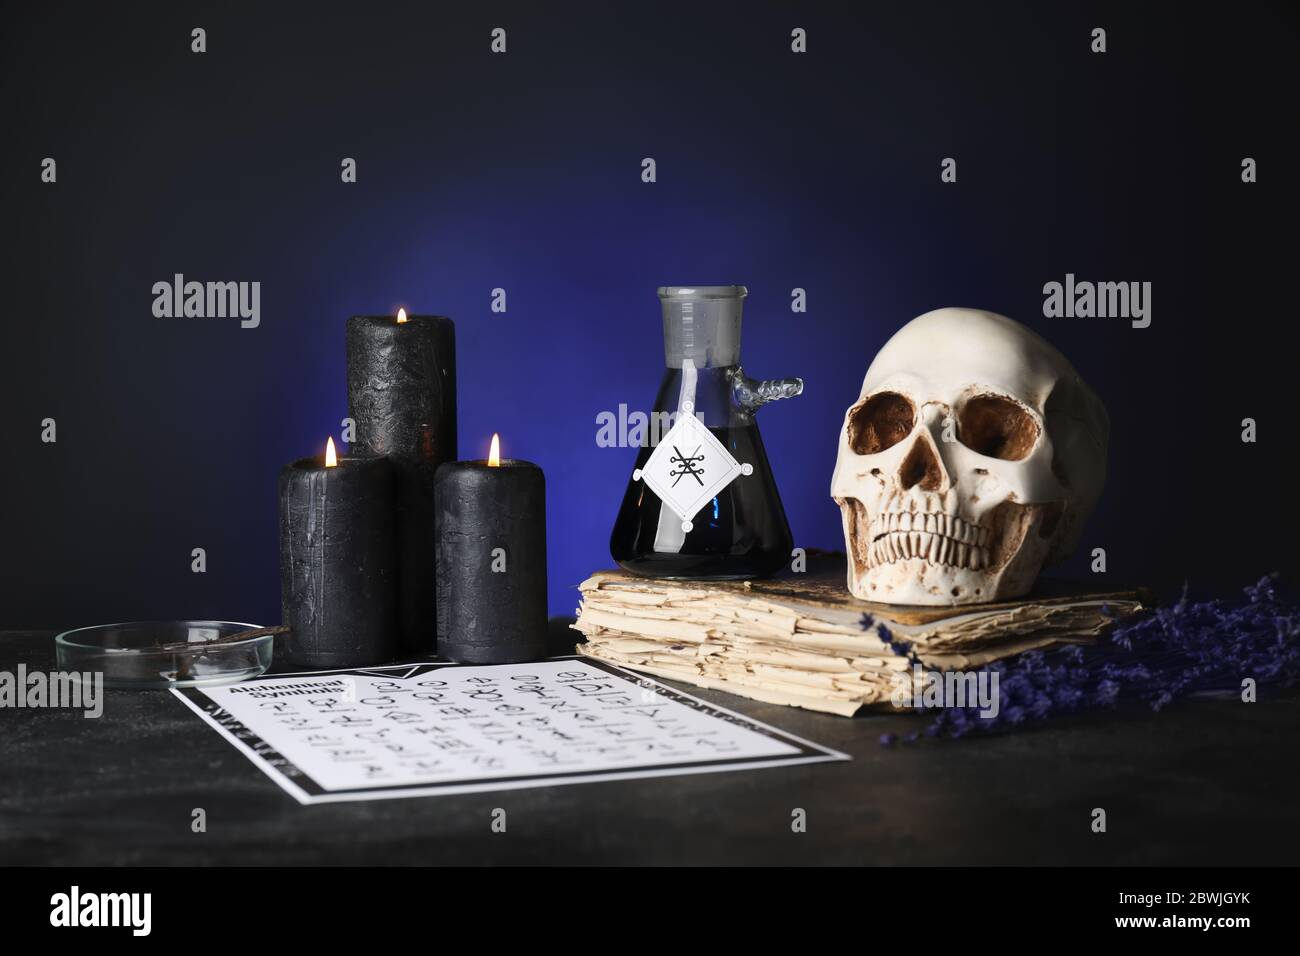 Potions, human skull and old book on alchemist's table Stock Photo